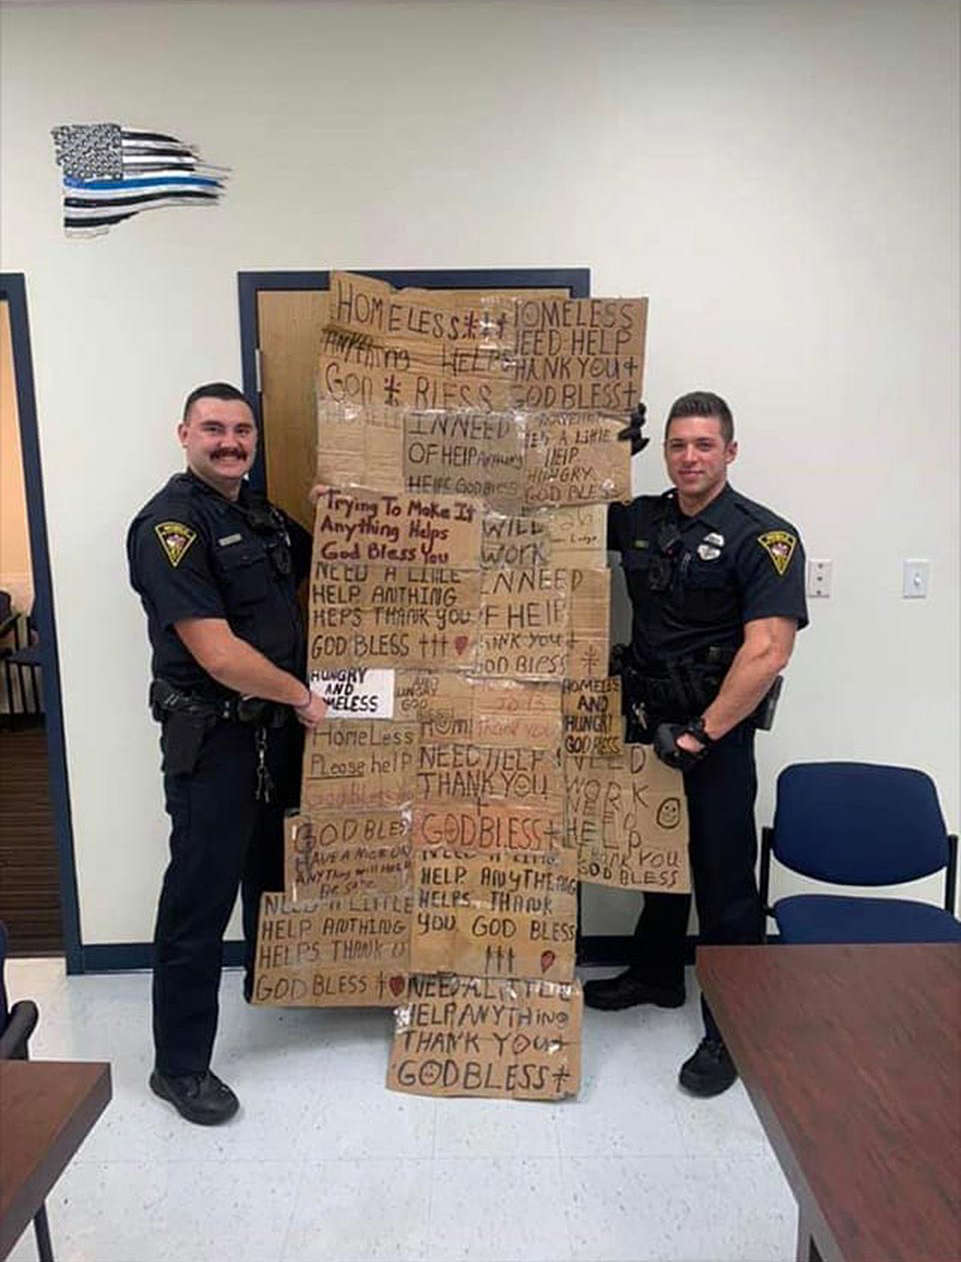 Mobile Alabama Police 'Homeless Quilt'  Alabama Cops Apologize for Posing with 'Quilt' Made of Signs Written by Homeless People  Credit: Facebook